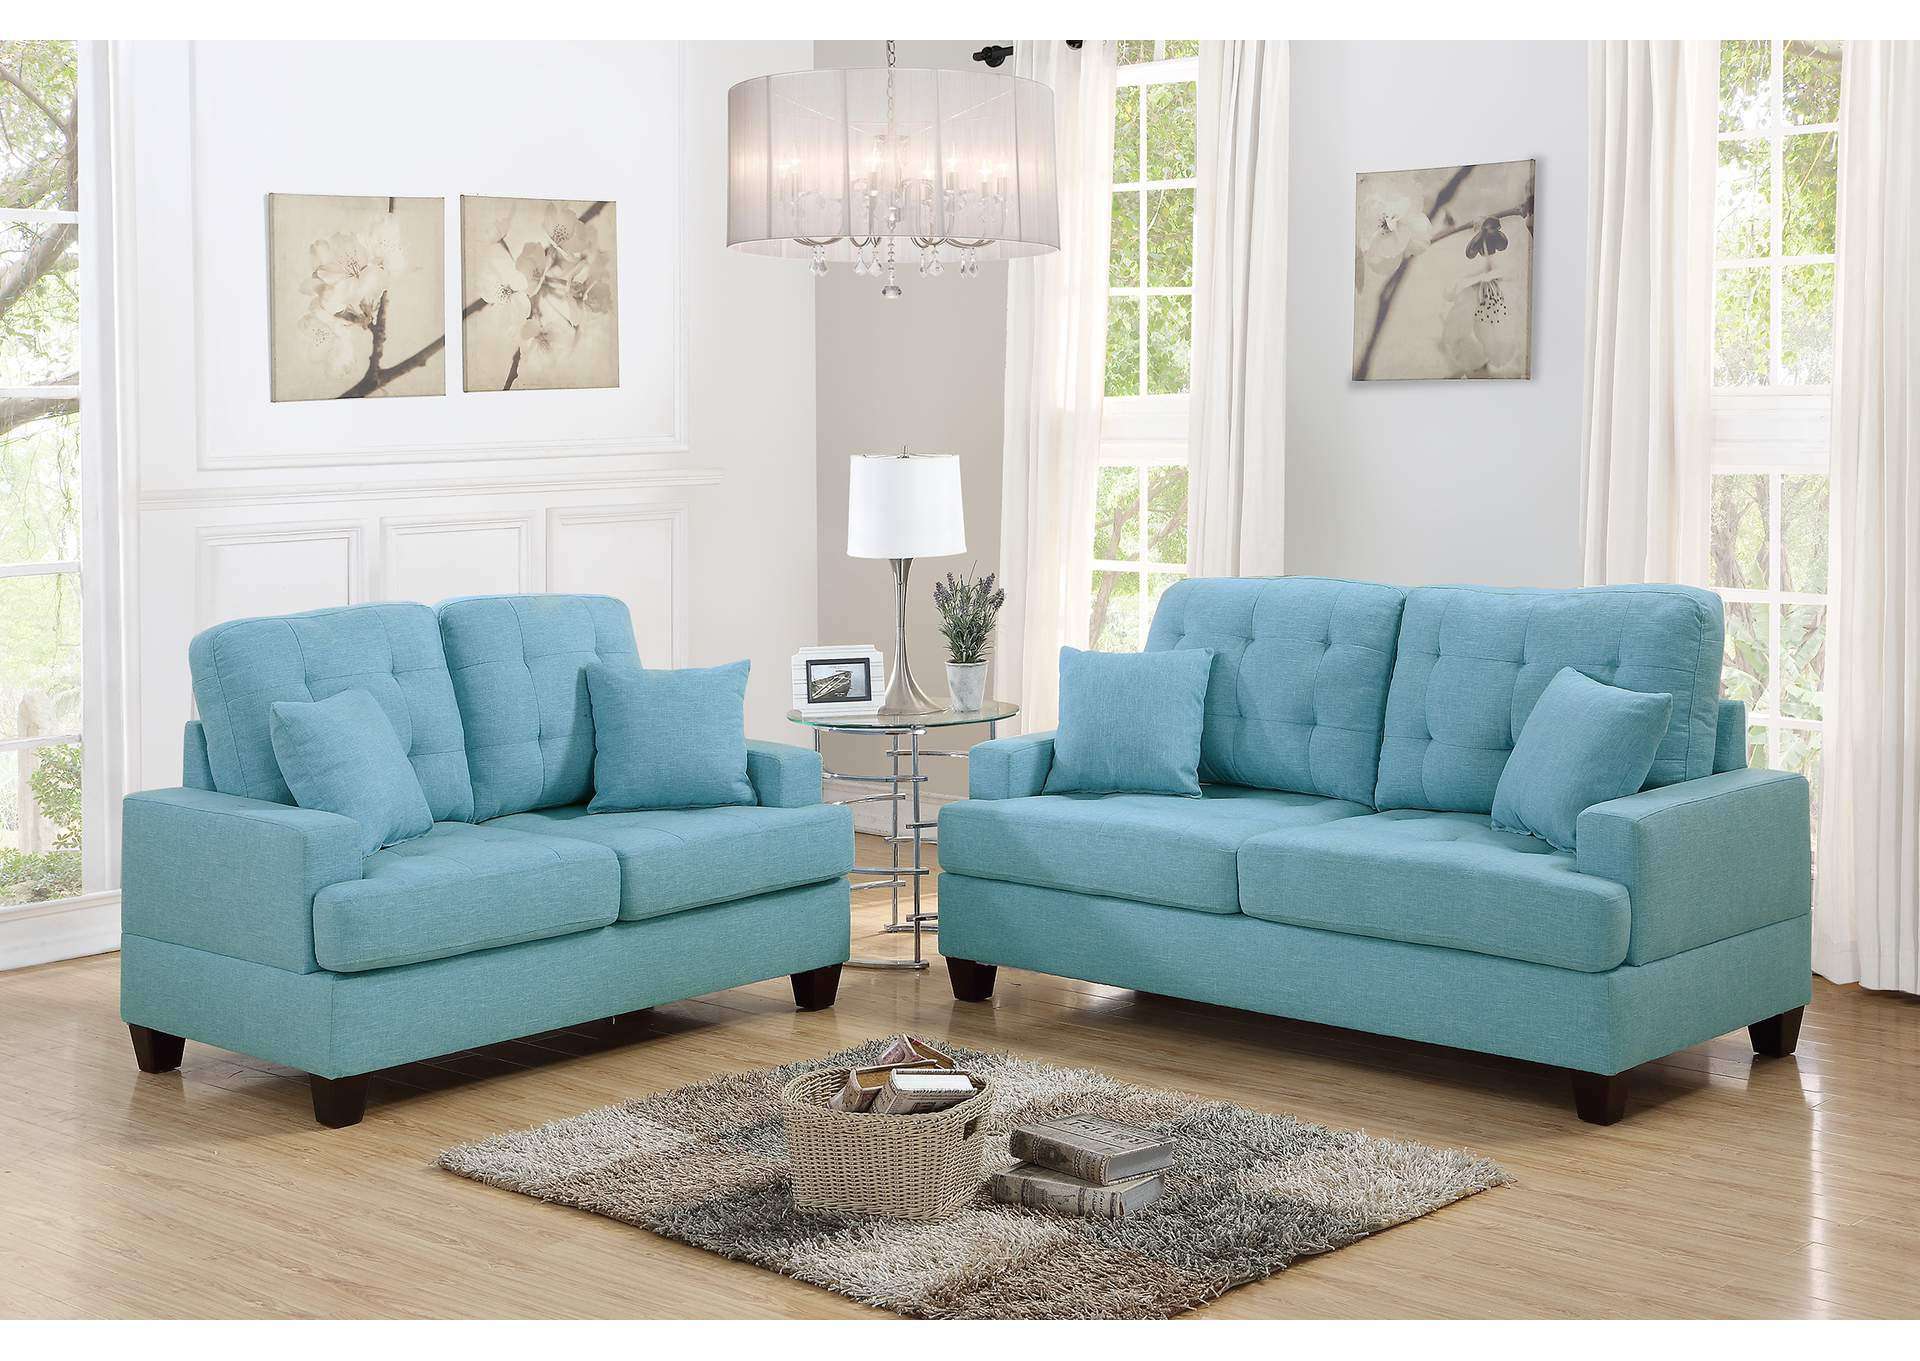 Blue 2 Piece Sofa Set,Poundex